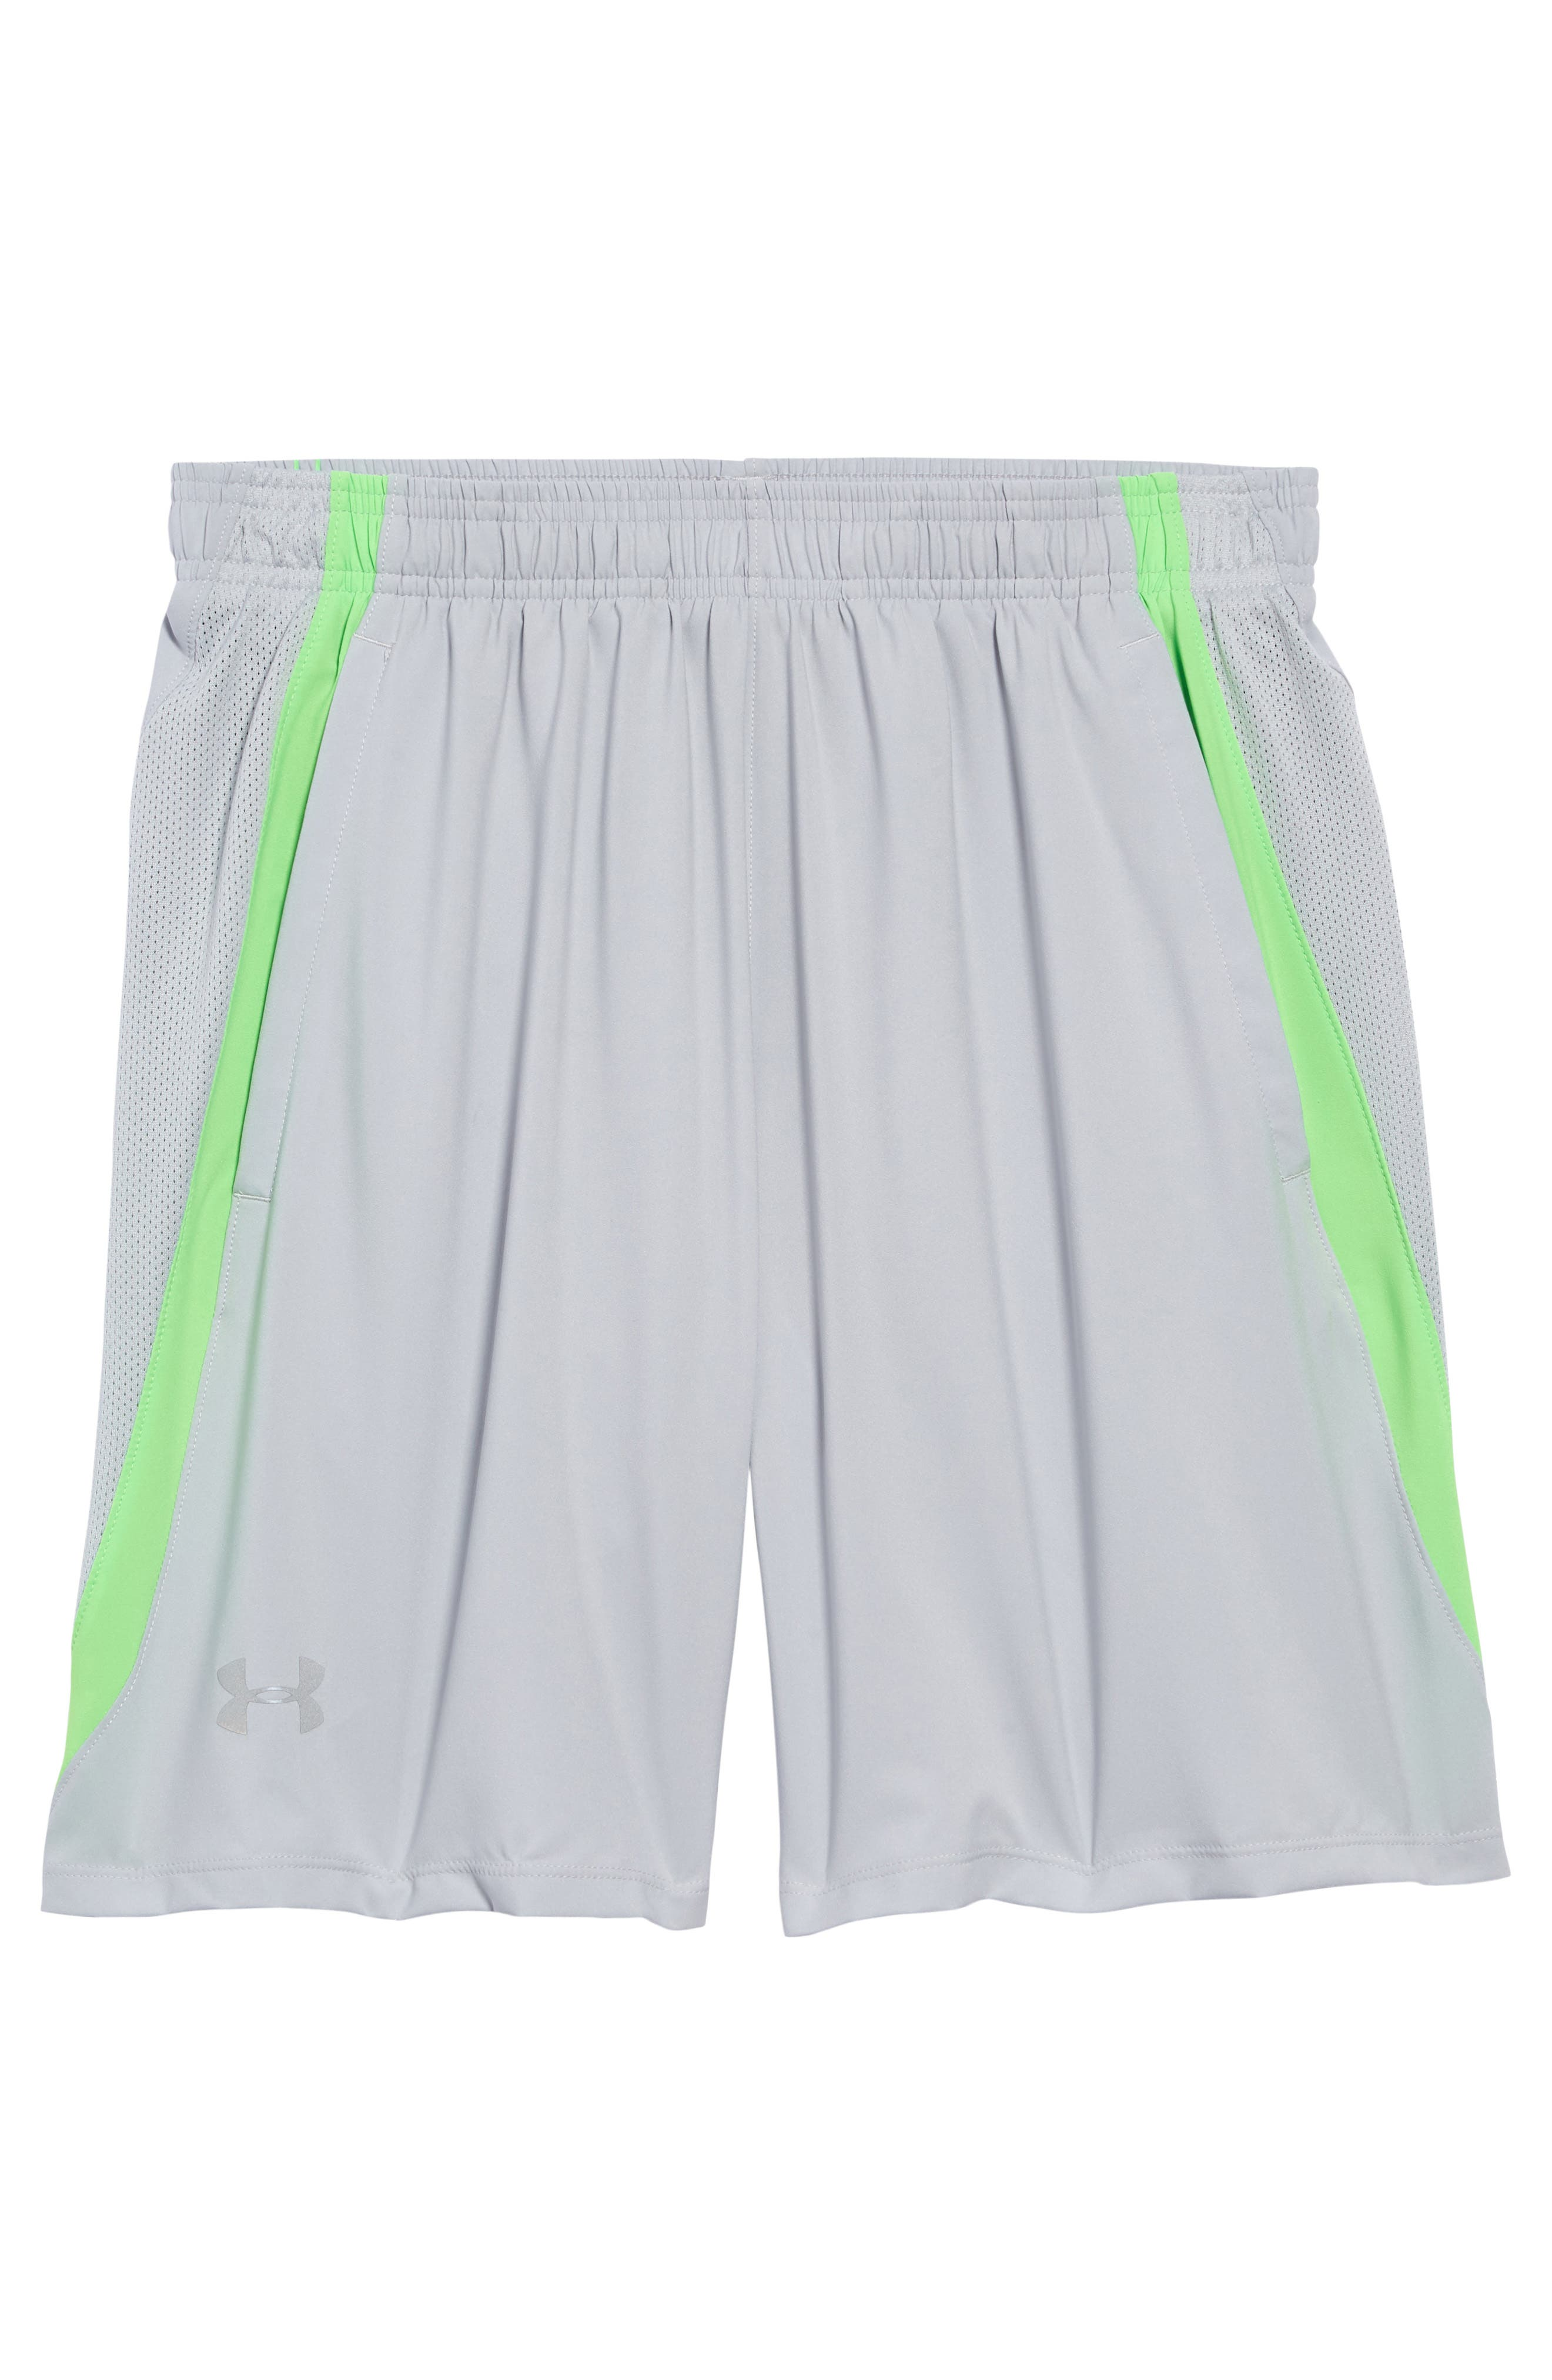 Under Armour Mesh Panel Performance Athletic Shorts